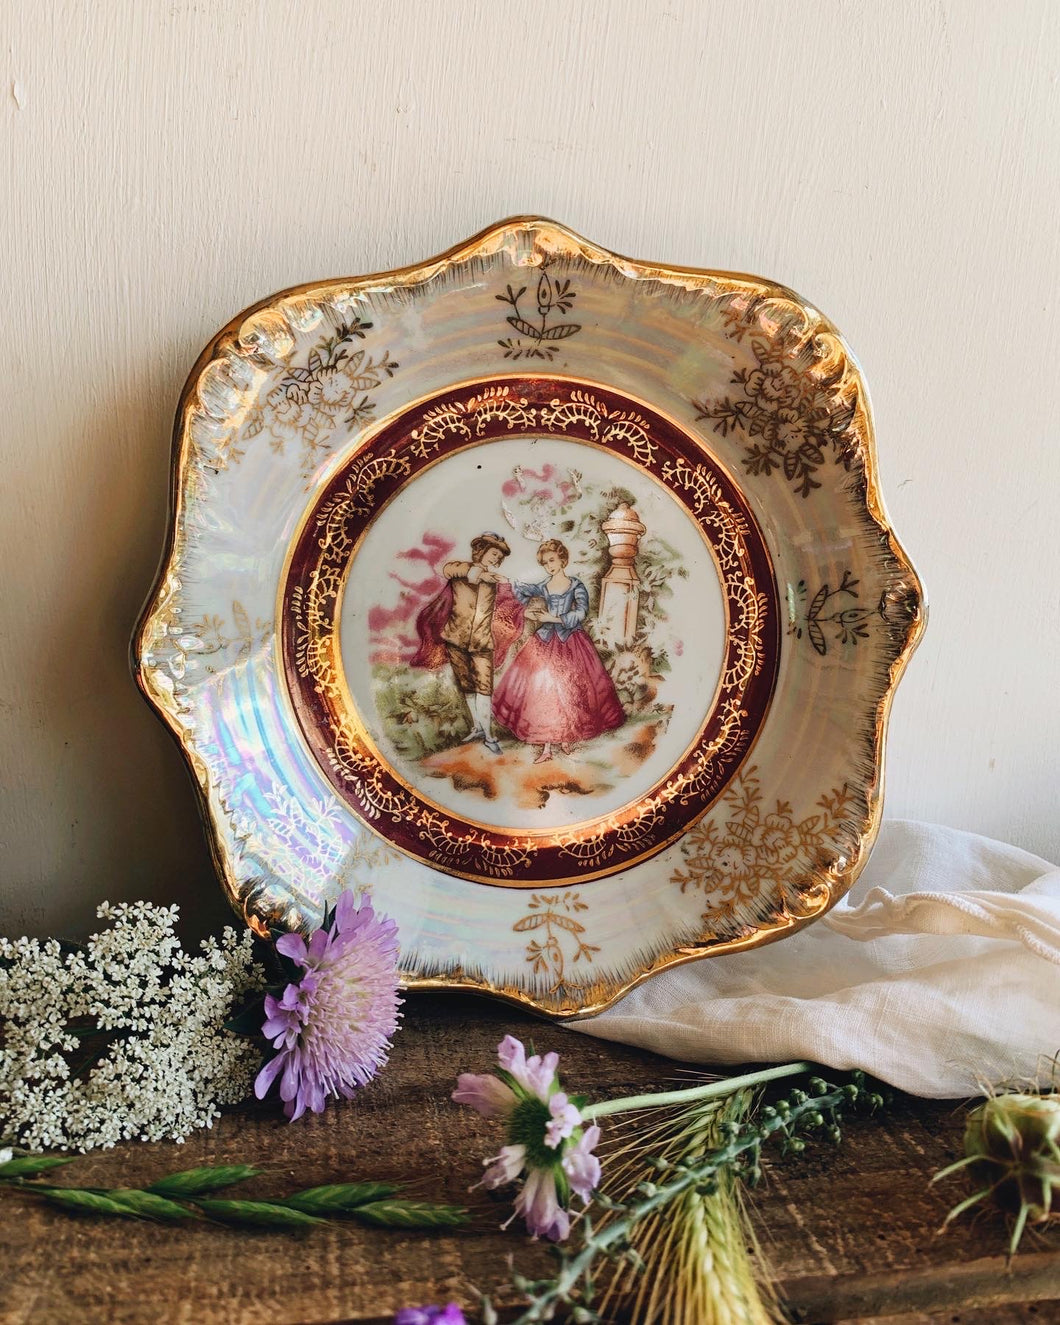 Vintage Whimsical Decorative Plate